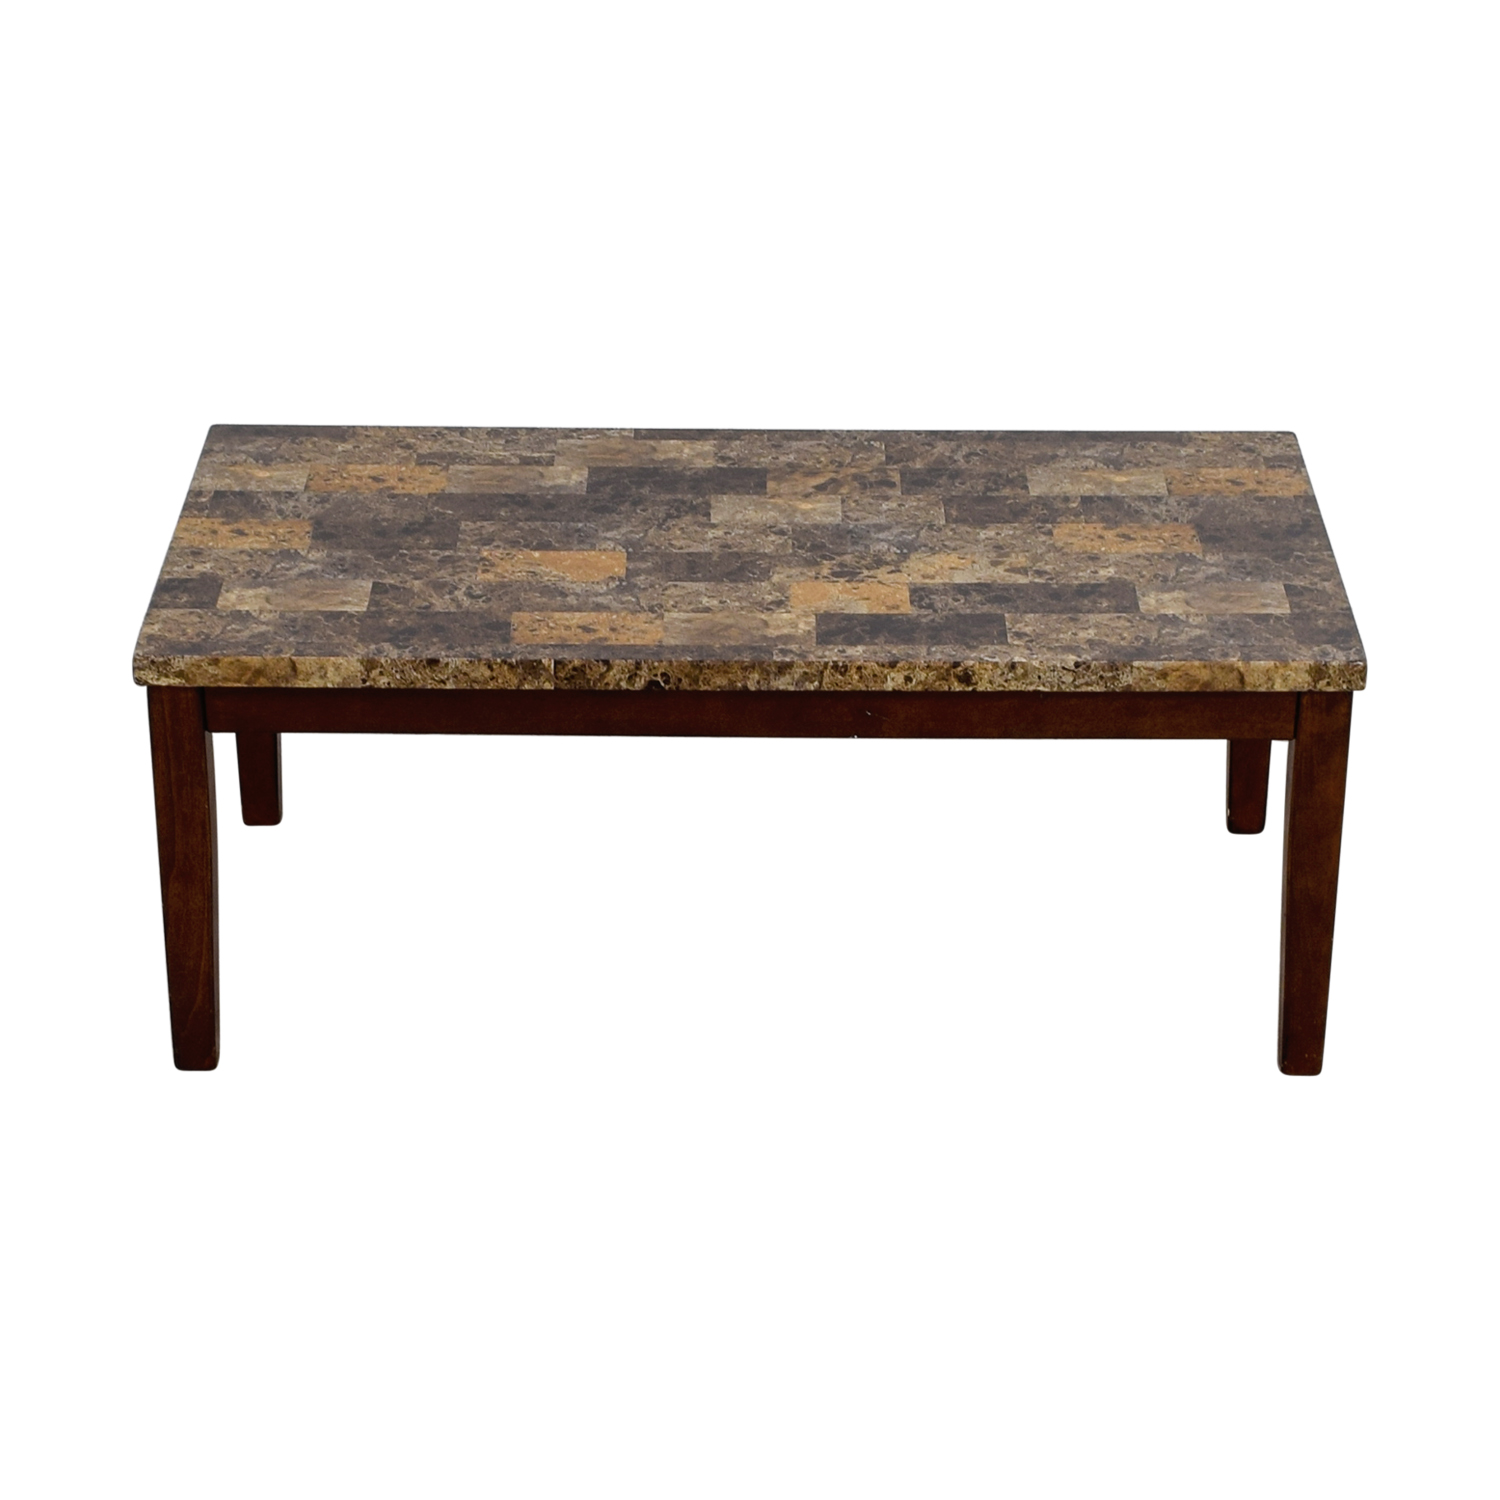 off ashley furniture faux marble coffee table used top end tables open cube rugs for dark brown skinny black nightstand affordable accent rustic trunk inch wide side kmart clothes